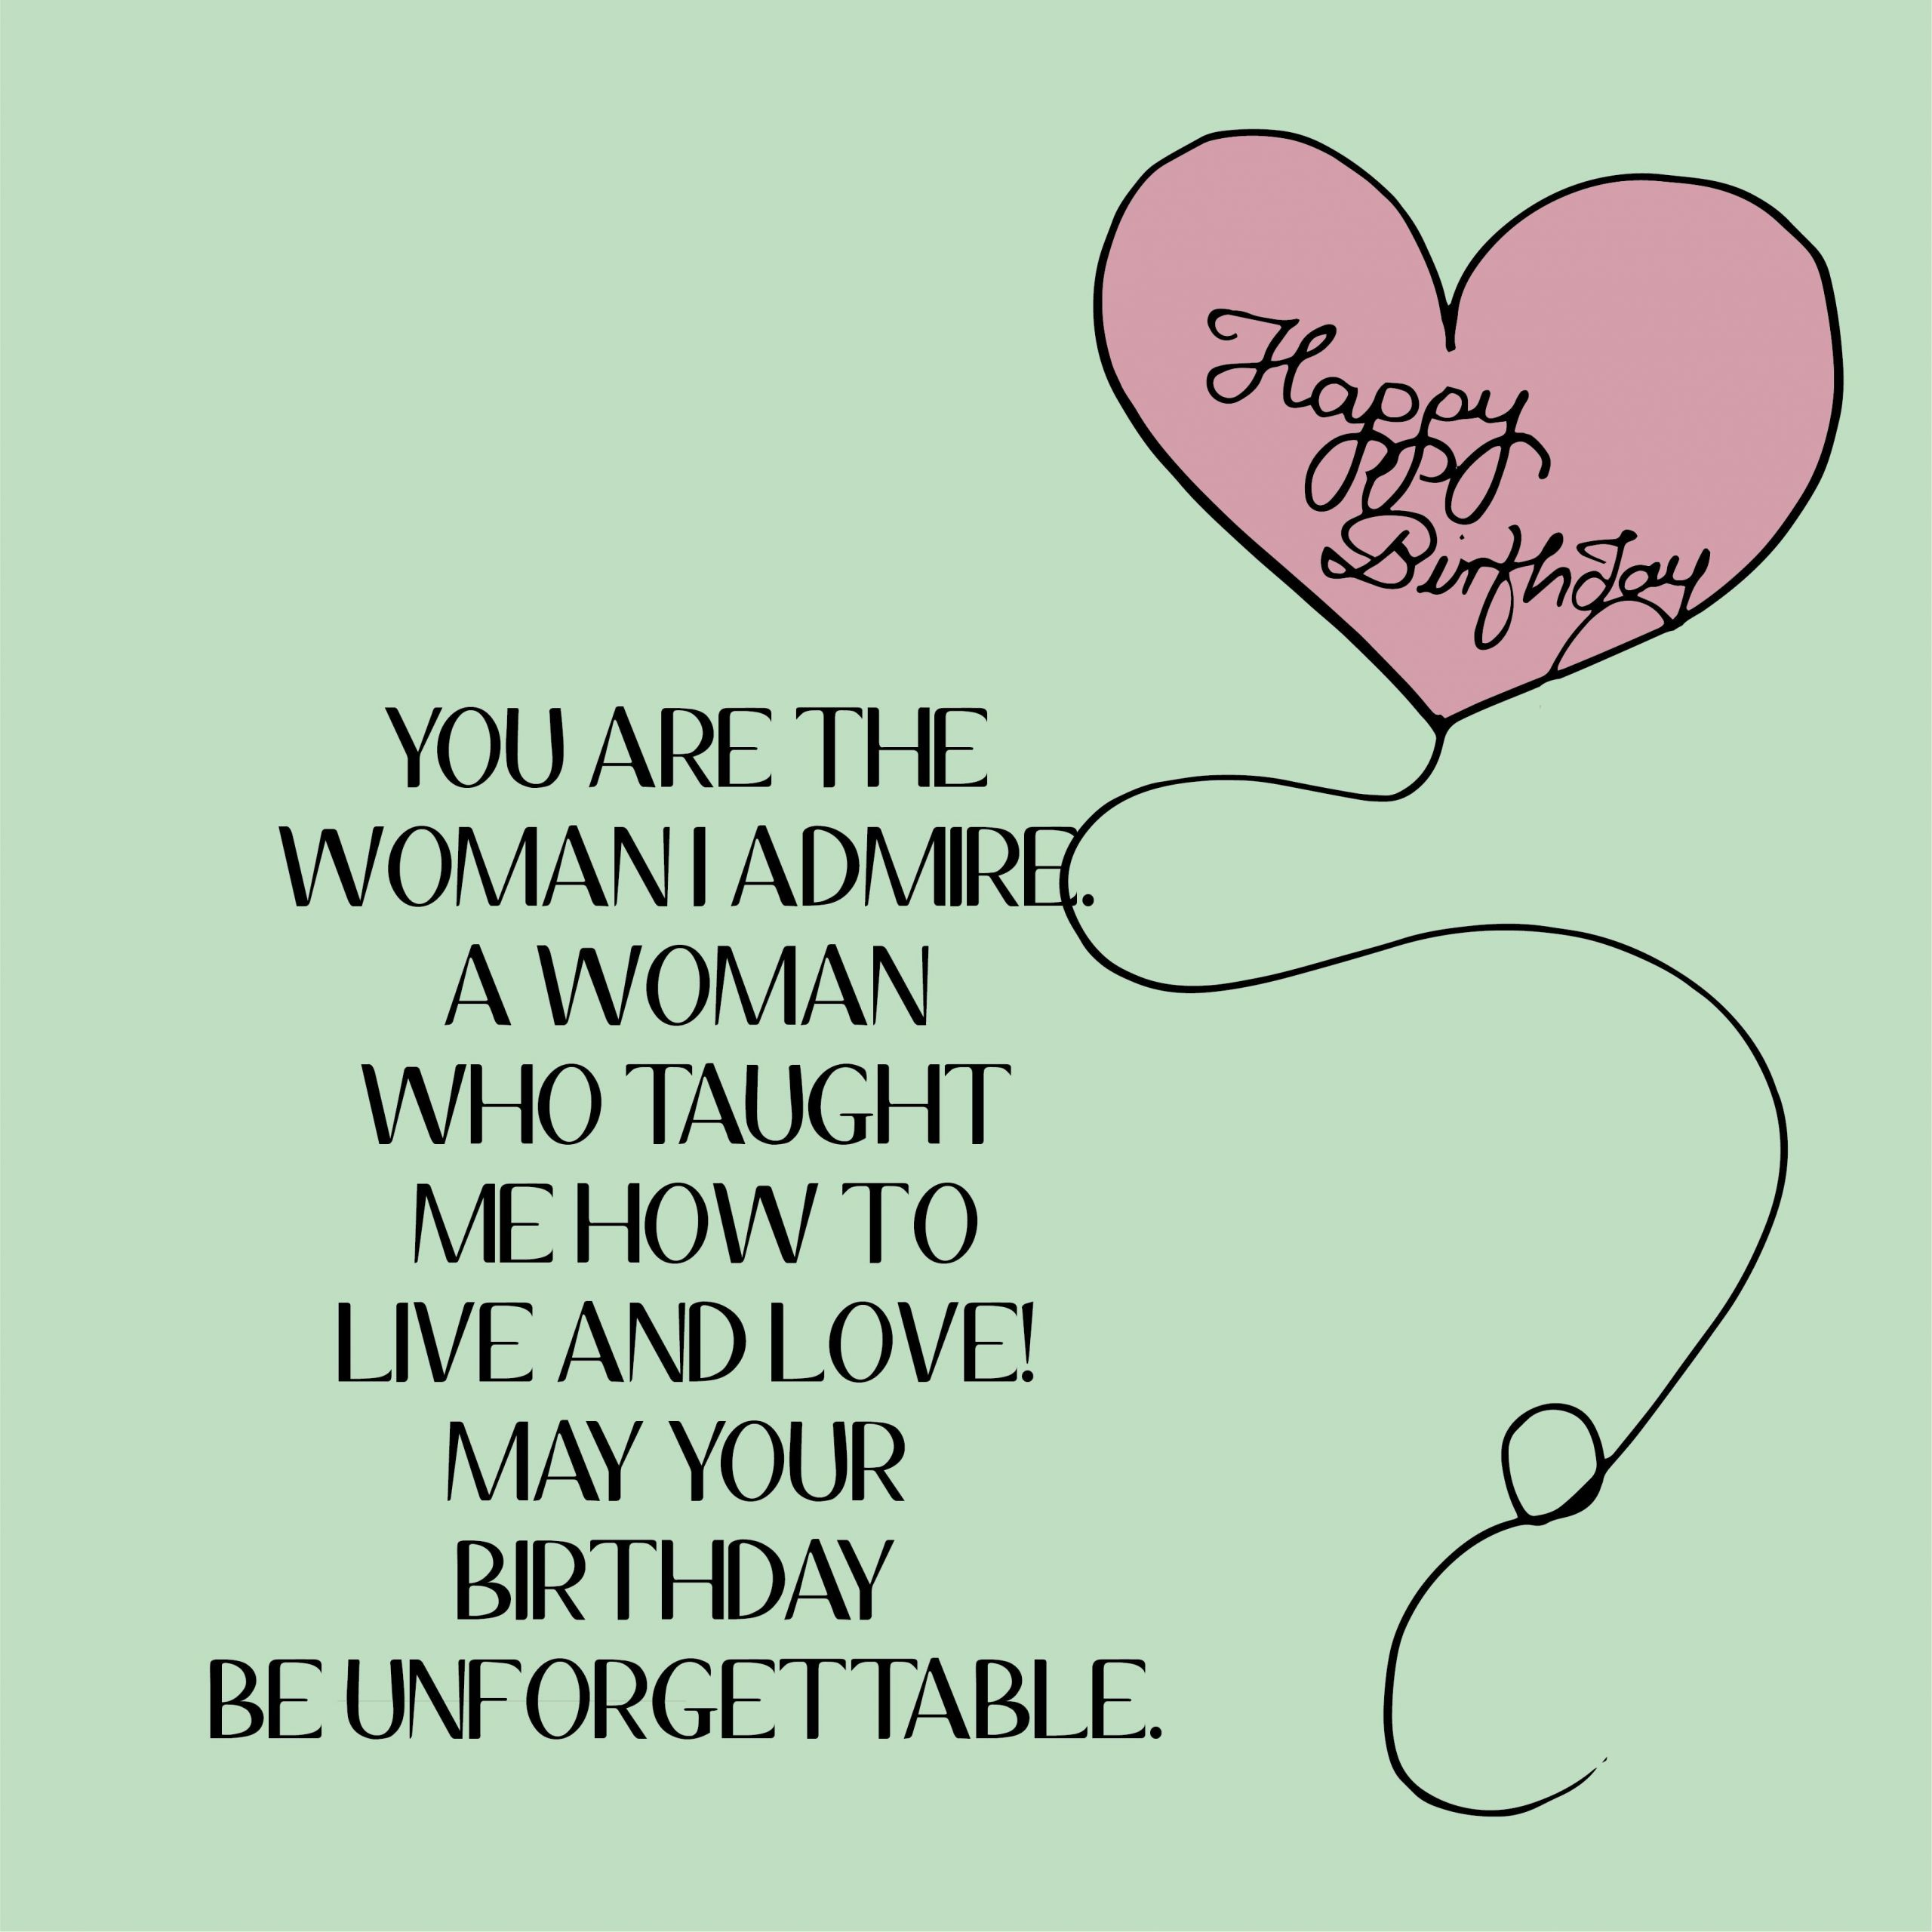 Birthday Wishes For Grandmother  Top 200 Happy Birthday Grandma Quotes and Wishes – Top